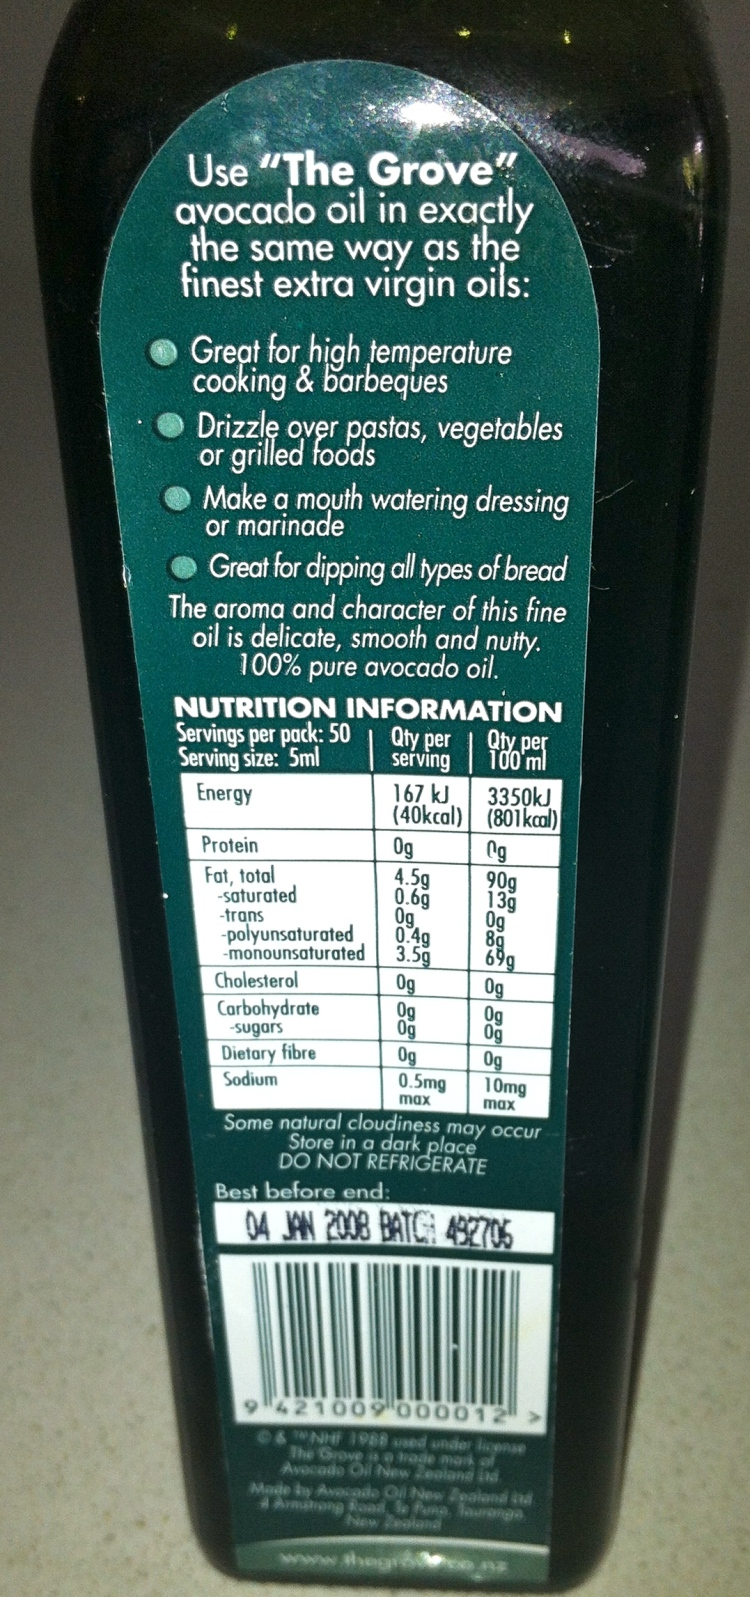 Avocado oil nutrition information and claims around it being useful for high heat cooking.